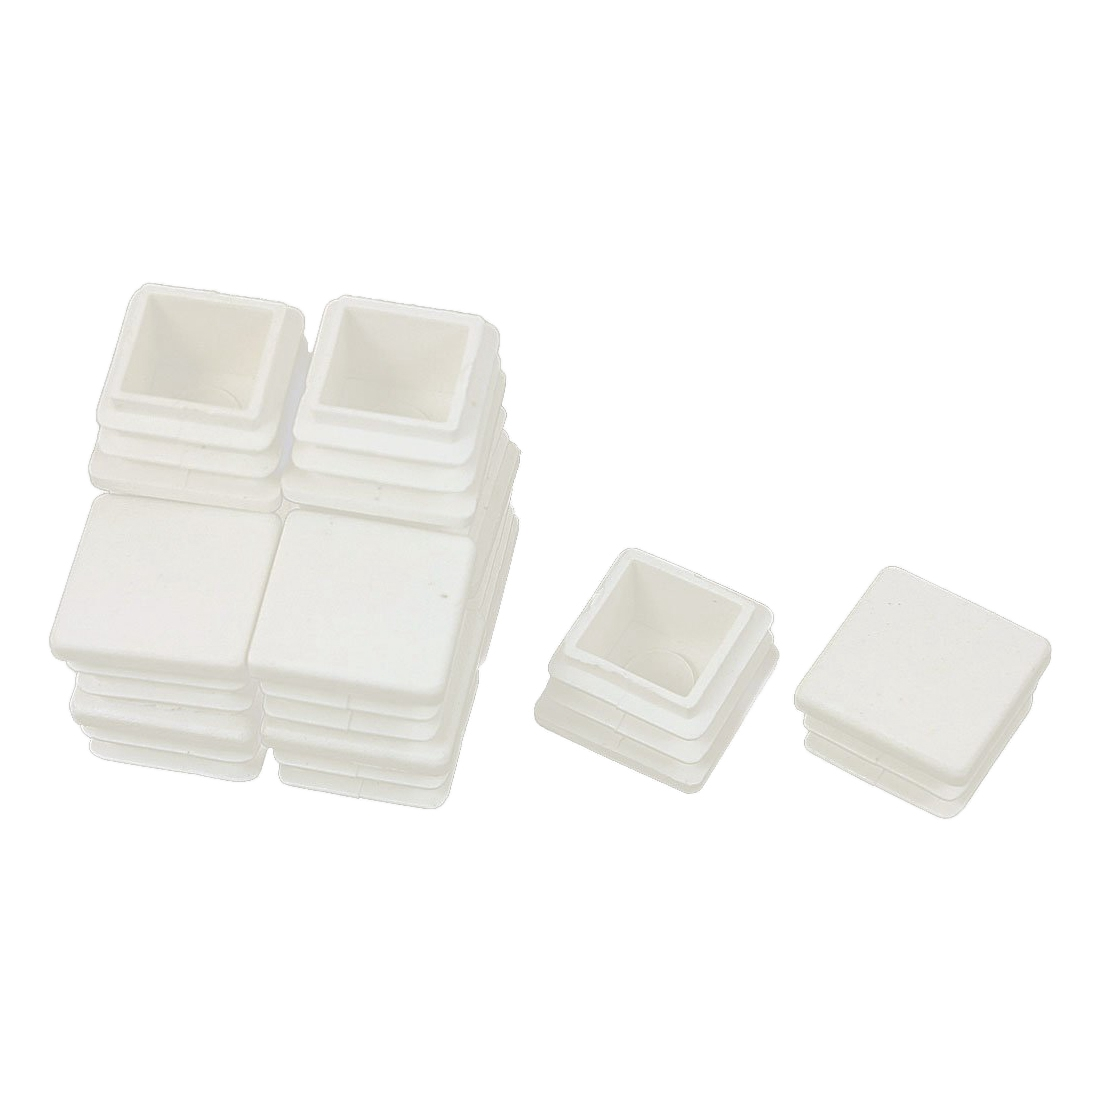 Hot Sale 20 mm x 20 mm plastic white end caps blanking version of the caps spare caps accessories for professional square tube hot unisex hospital medical caps surgical caps operation caps scrub lab clinic dental for doctor nurse100